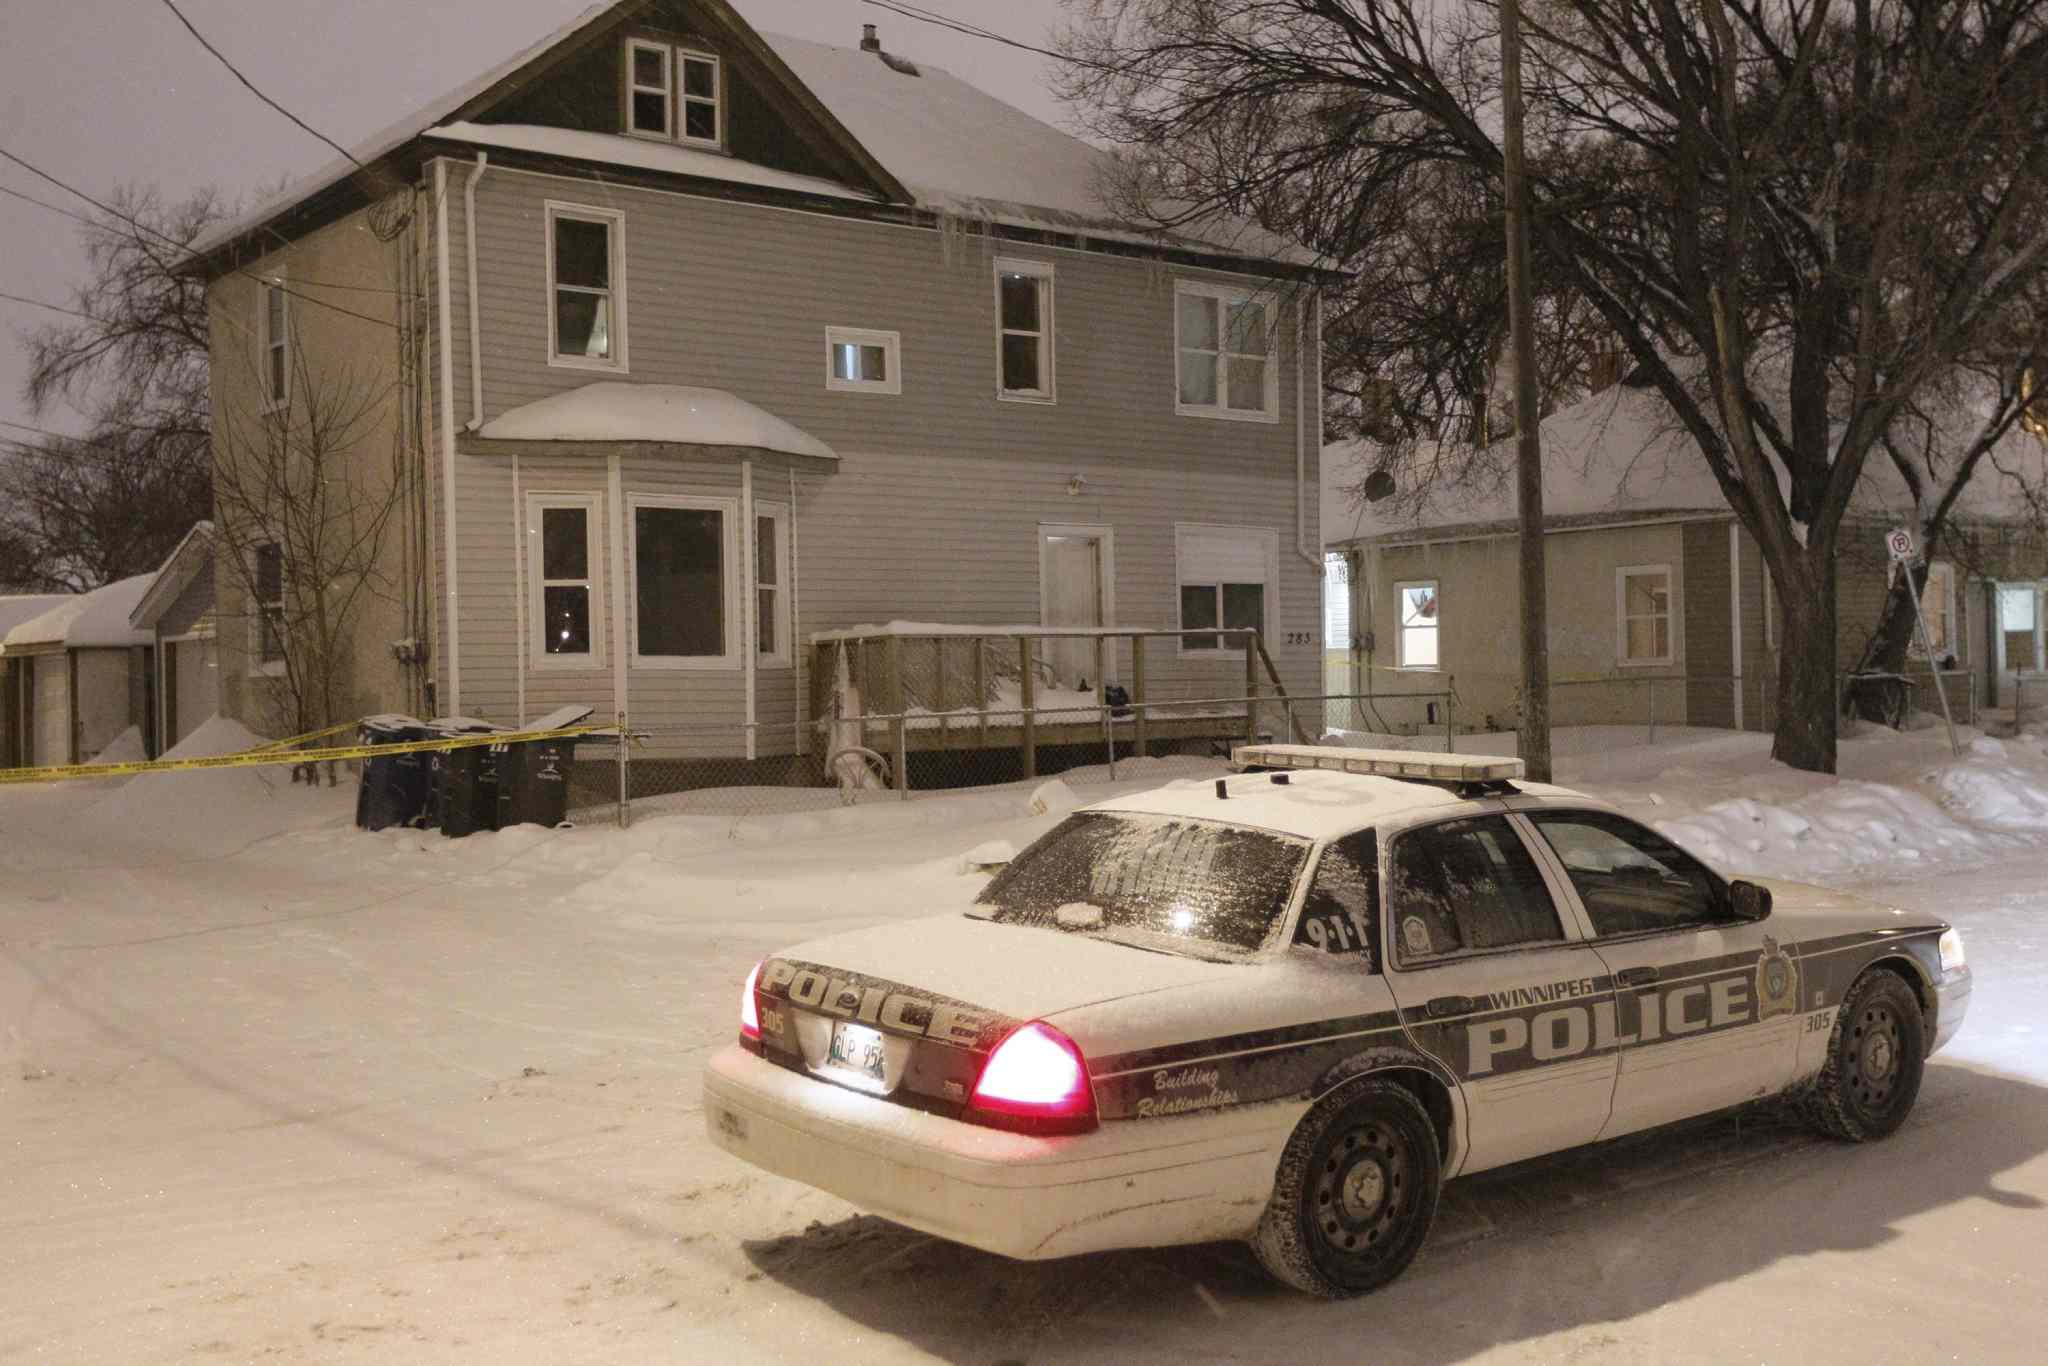 Police investigate a suspicious death at 283 Andrews St. Sunday evening.